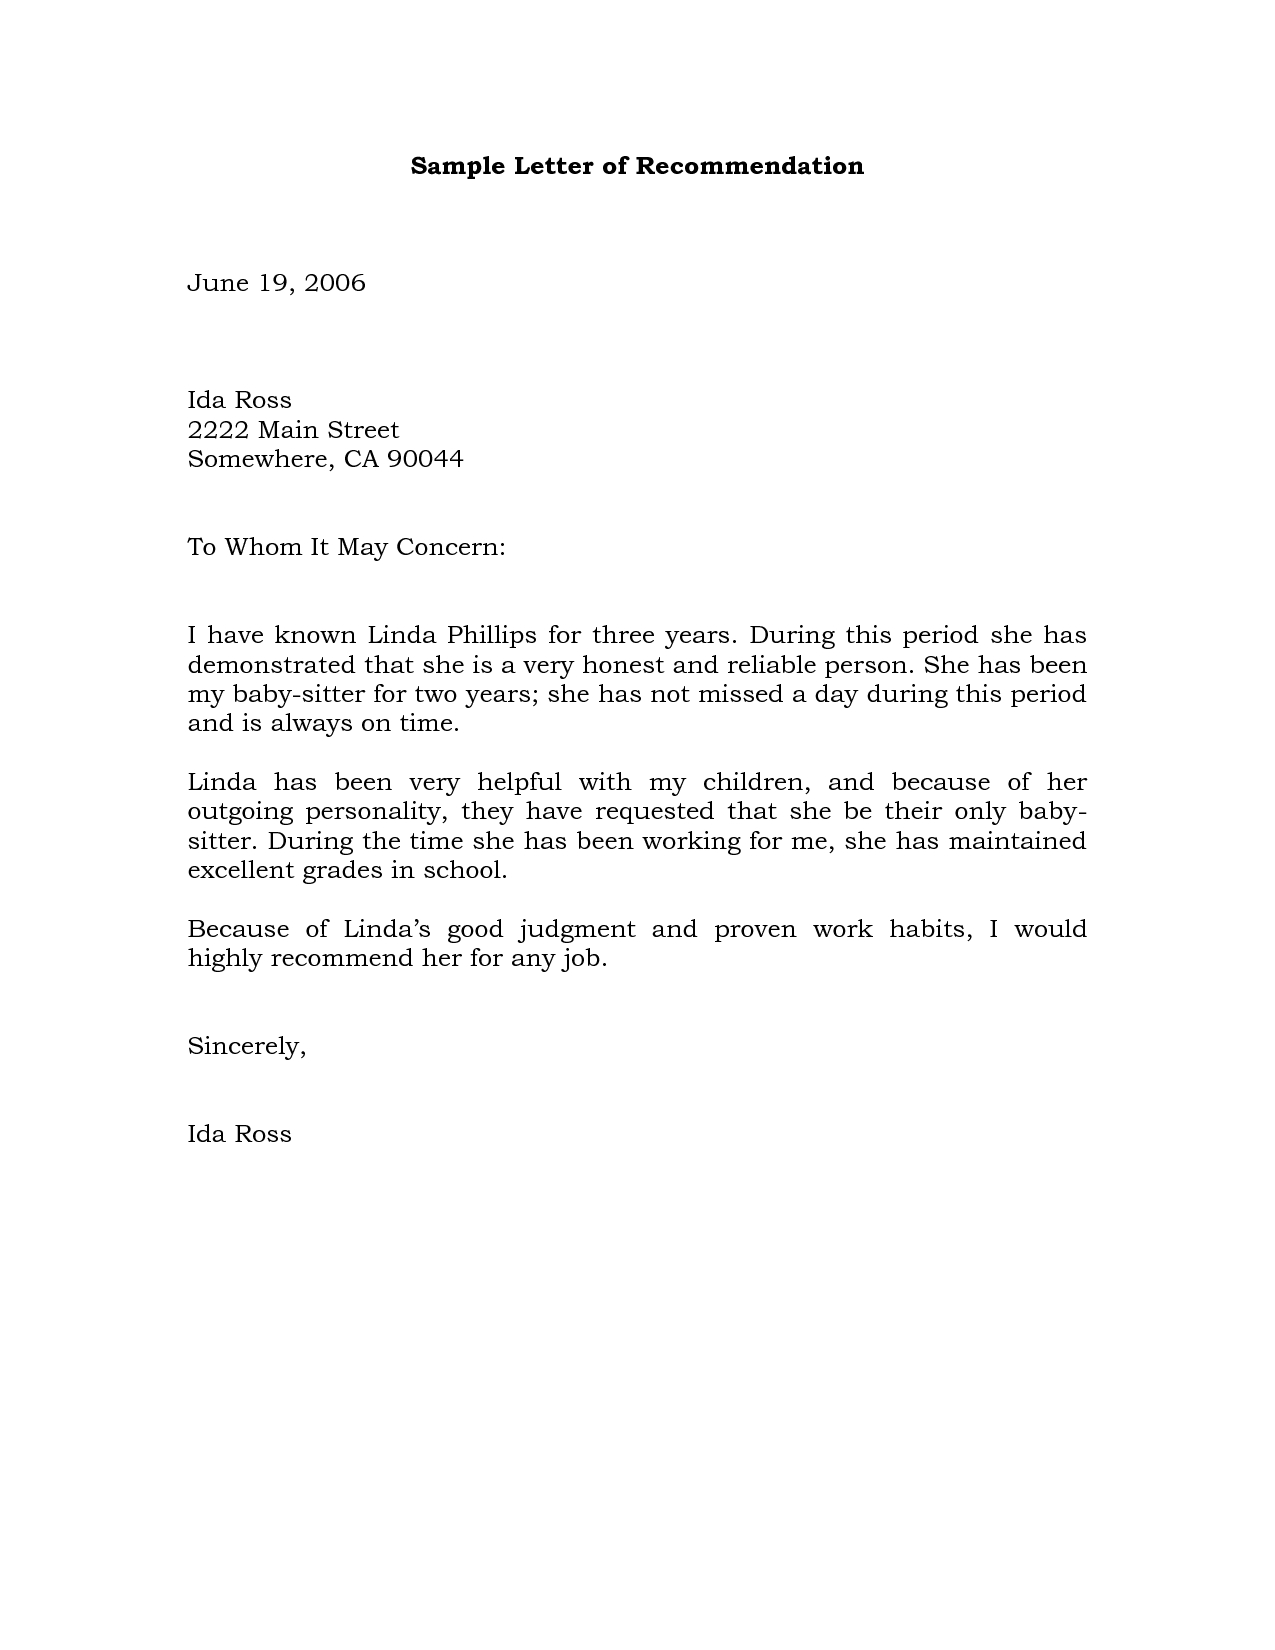 letter of recommendation template pdf example-Sample Re mendation Letter Example 2-f